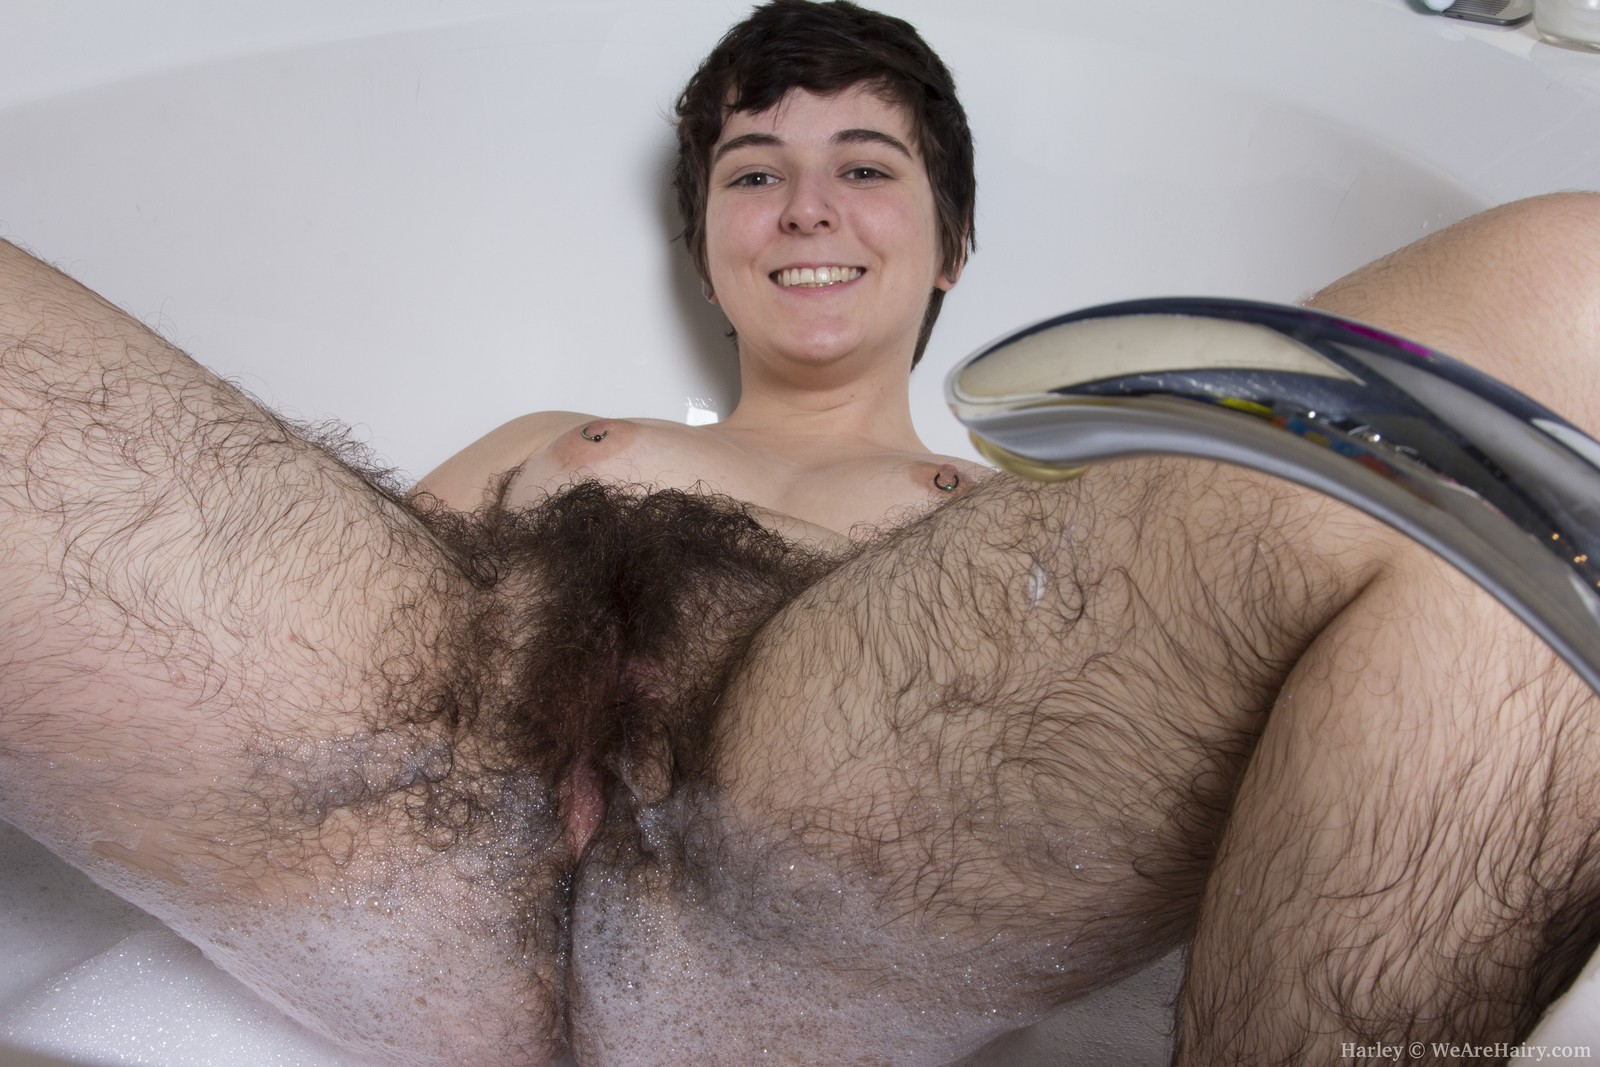 Between speaking, Teen extreme hairy pussy that